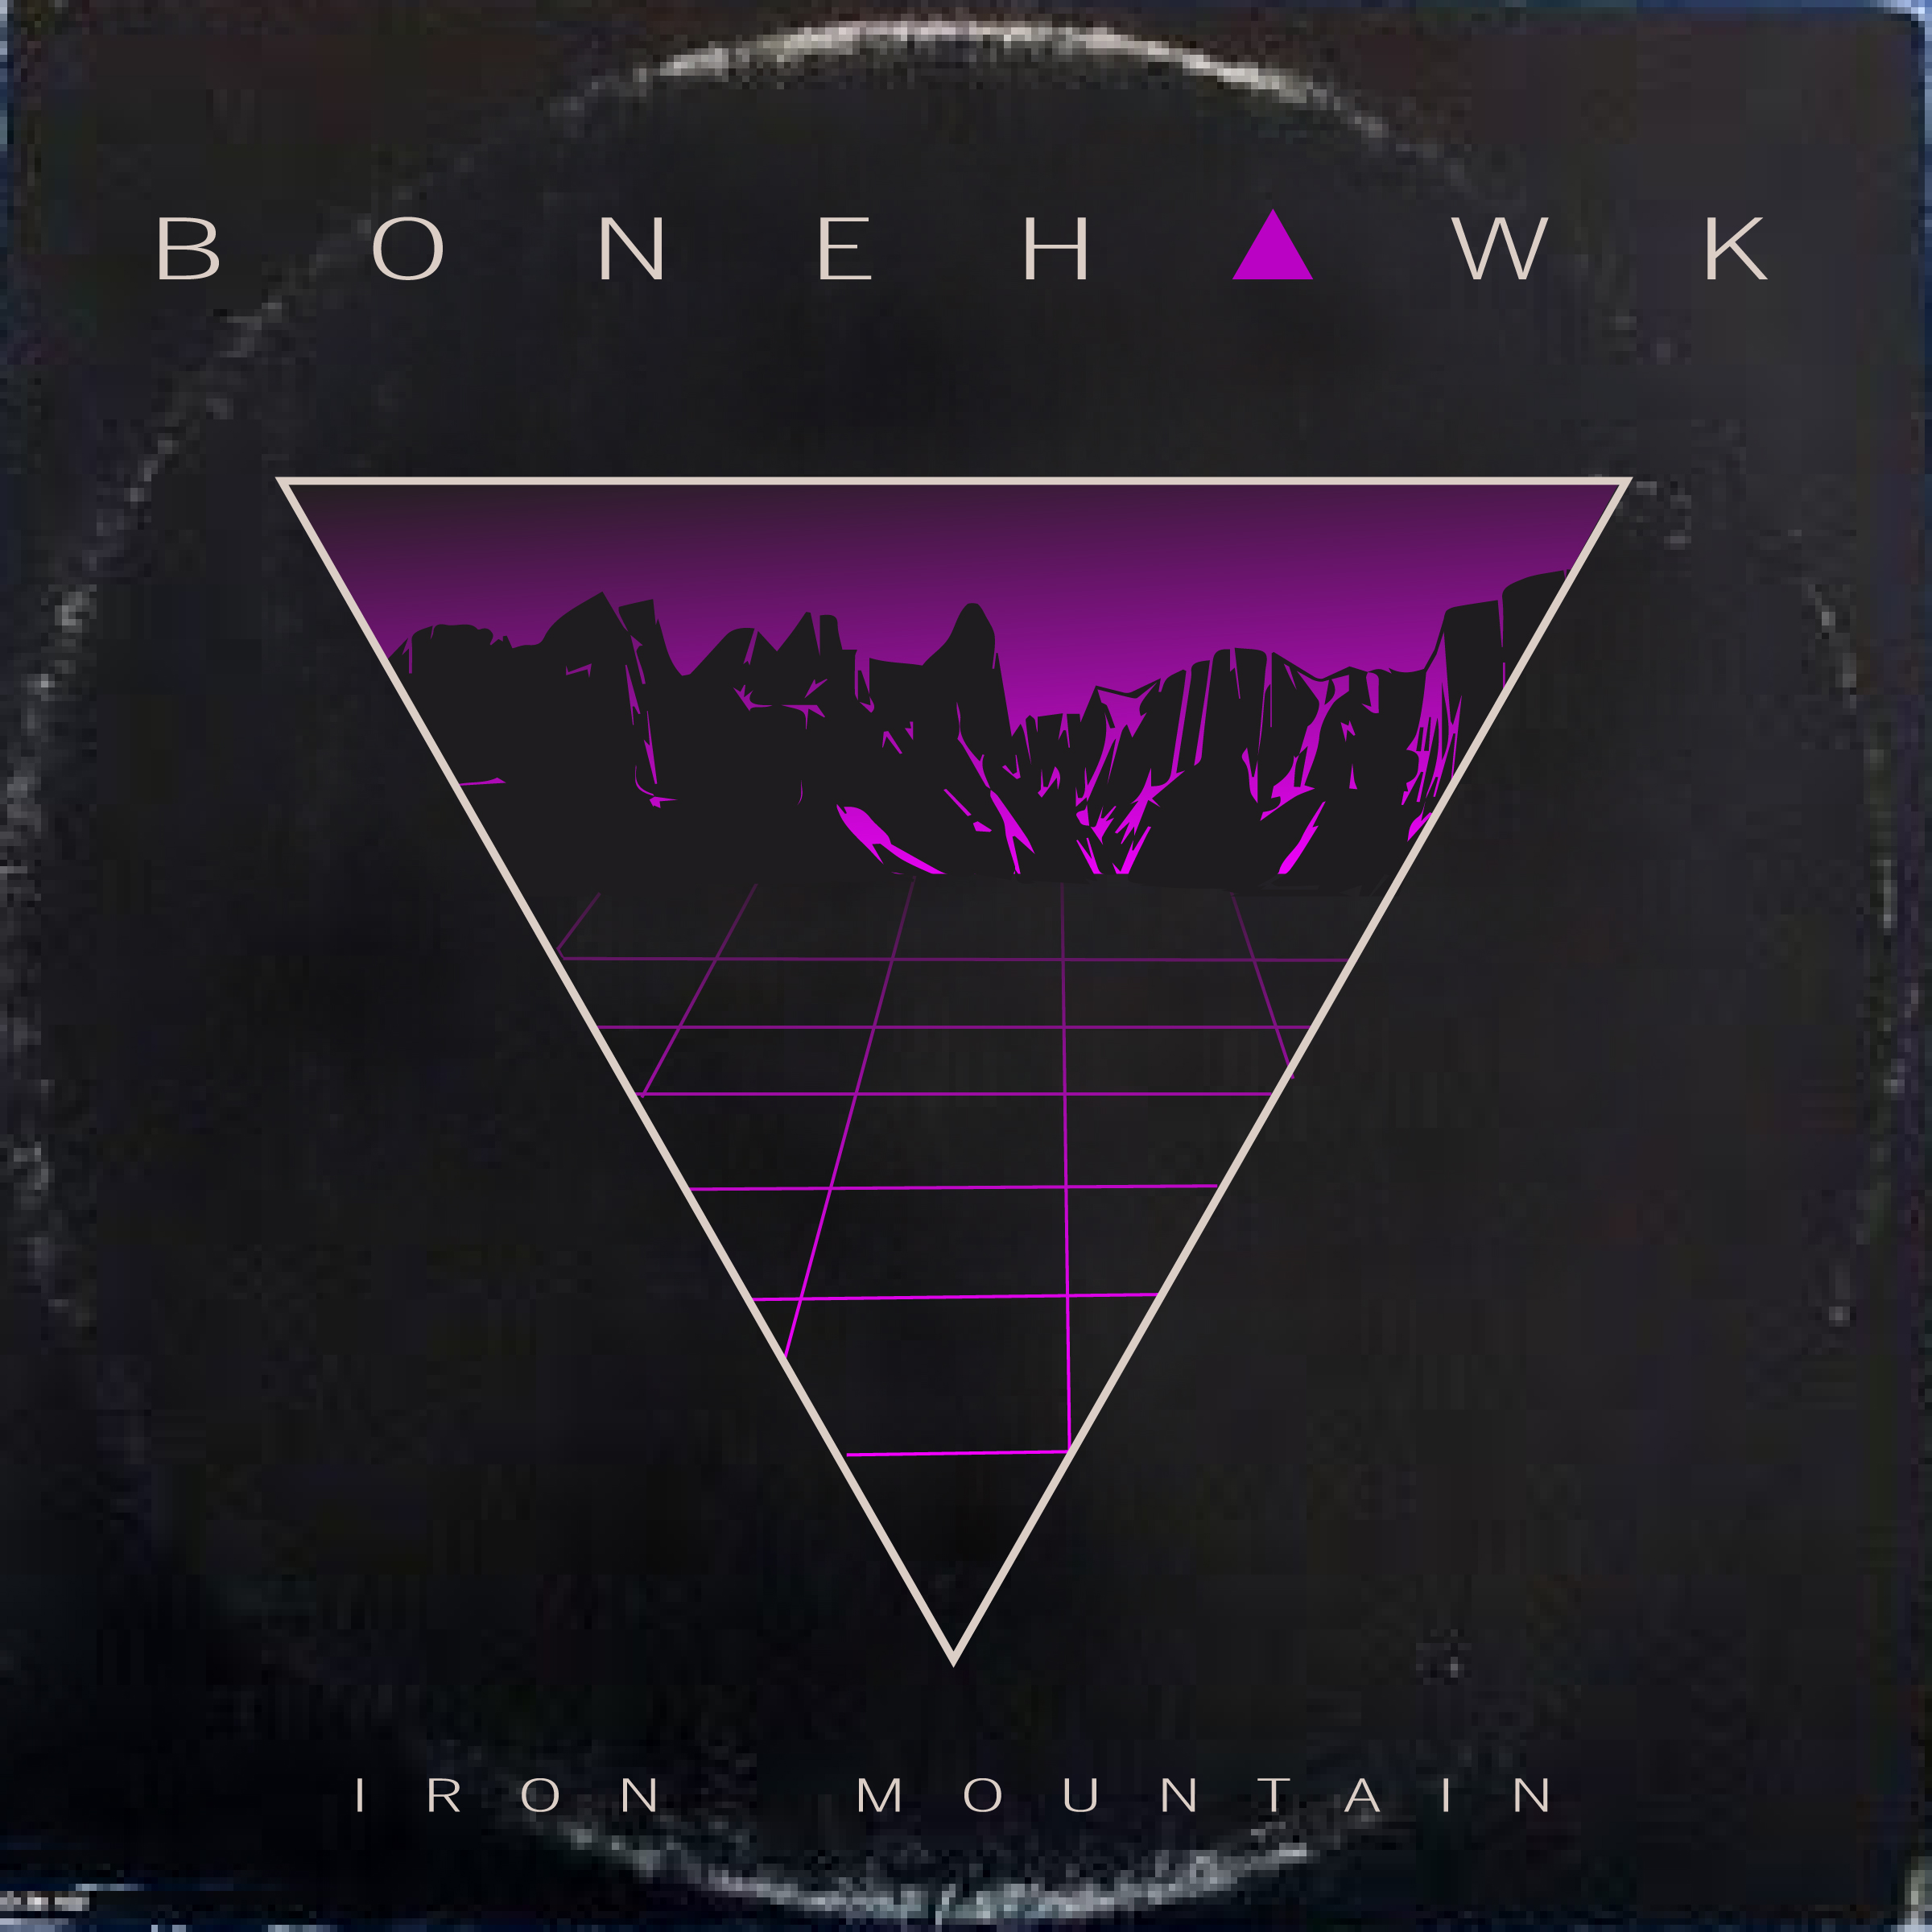 bonehawk iron mountain